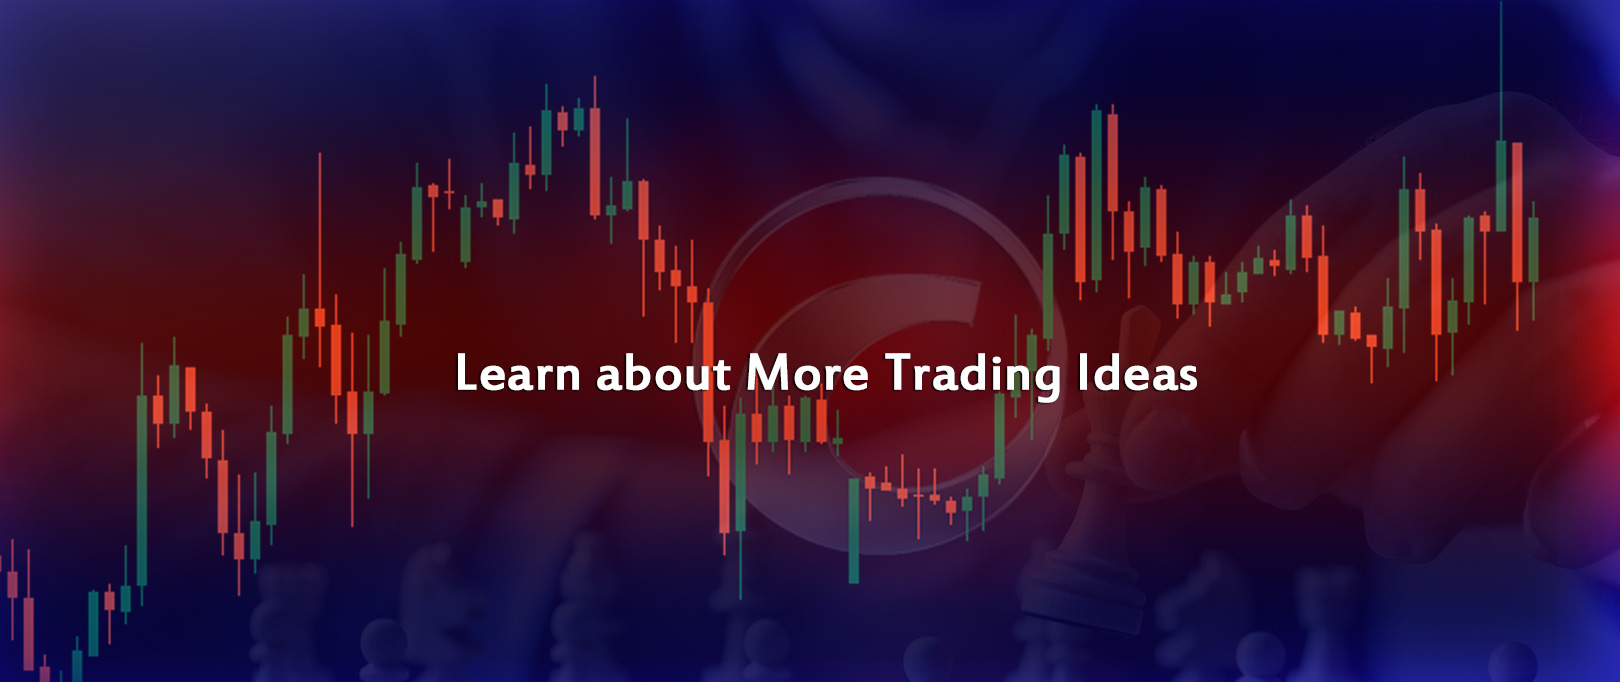 Learn-about-More-Trading-Ideas-in-Sri-Lanka-by-Prathilaba